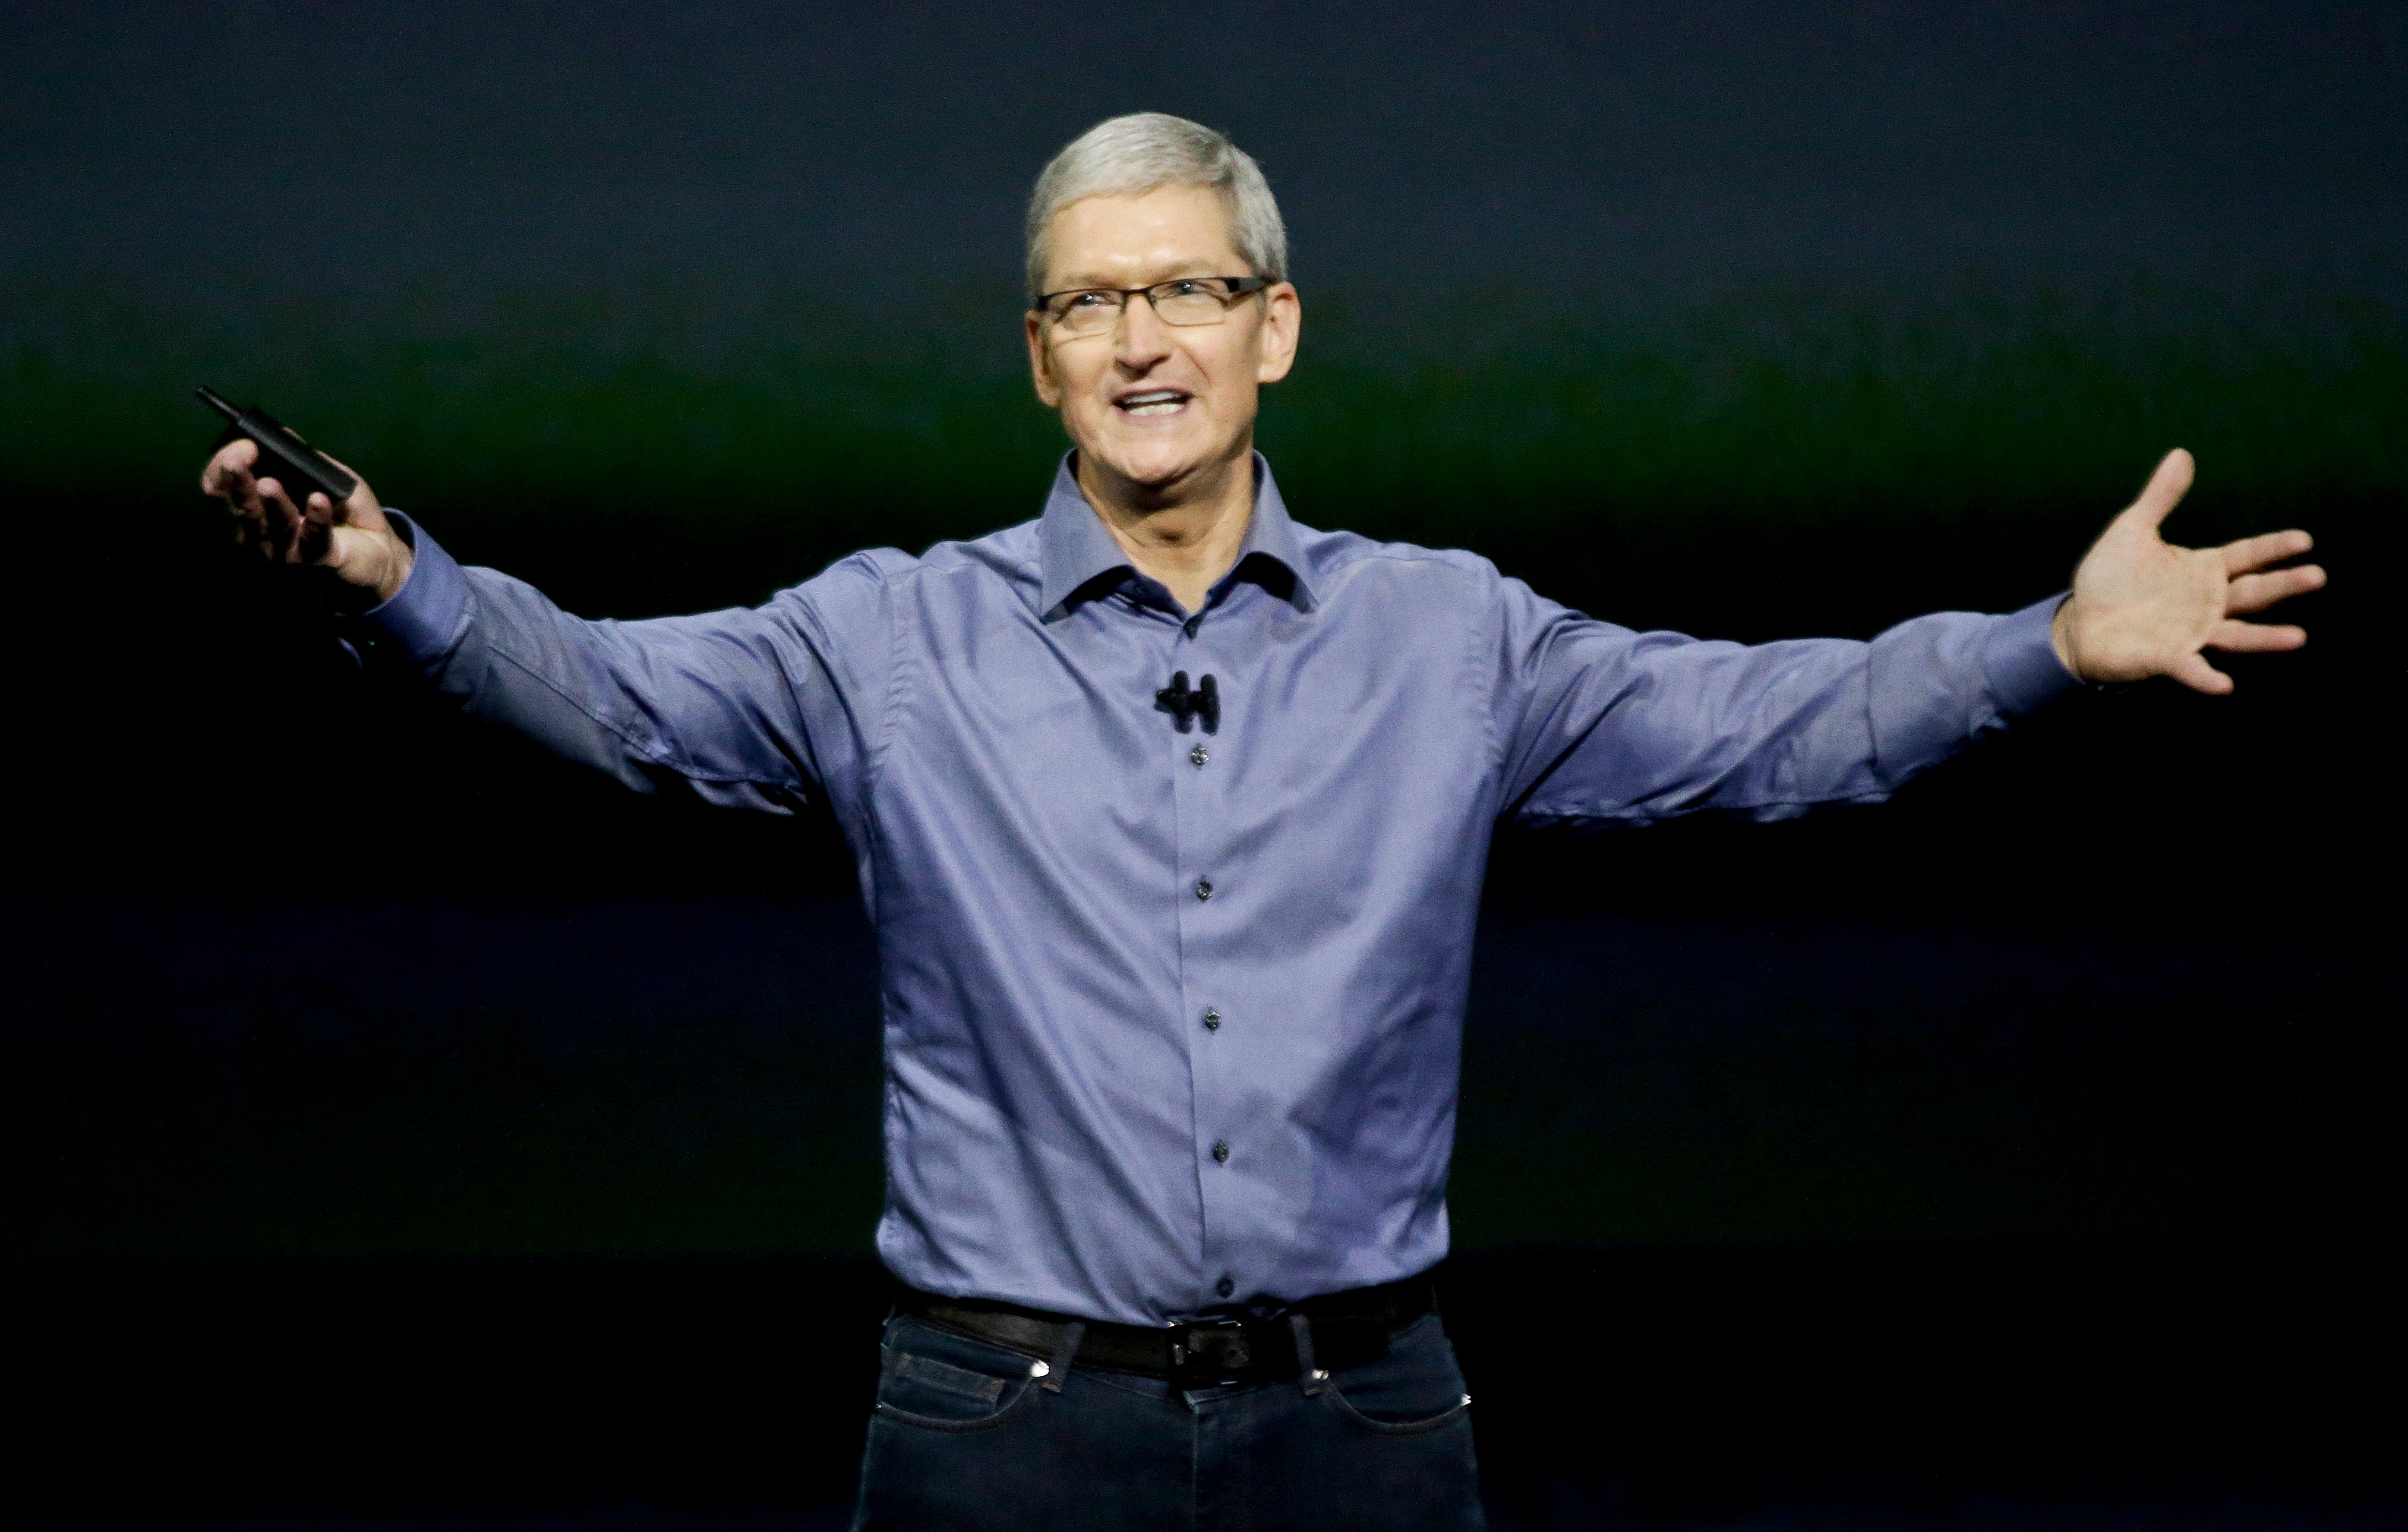 Apple CEO Tim Cook wraps up the latest Apple event at the Bill Graham Civic Auditorium in San Francisco, Wednesday, Sept. 9, 2015. (AP Photo/Eric Risberg)